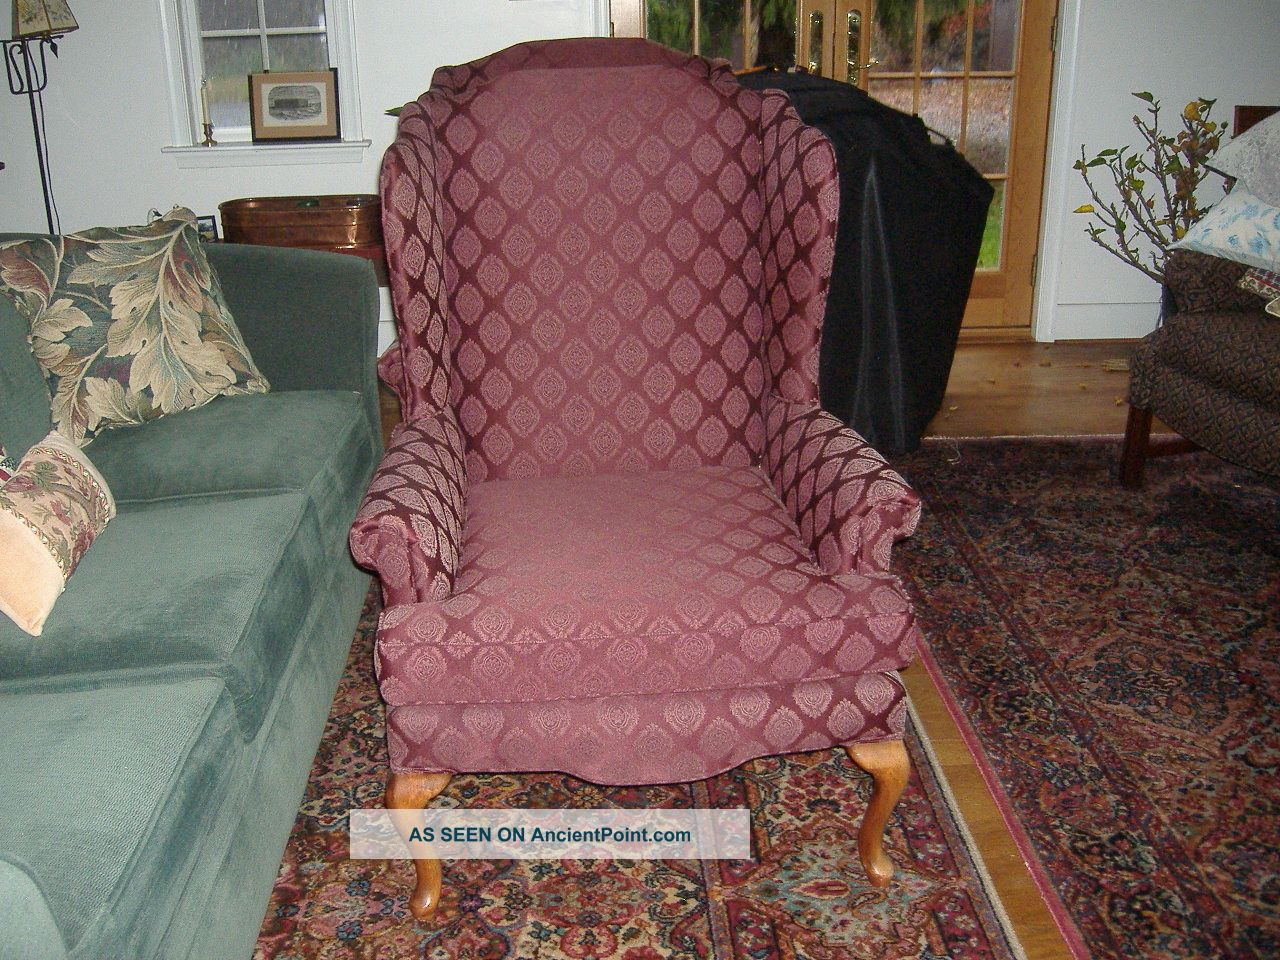 Pair Of Tall Living Room Queen Anne Wing Chairs By Sam Moore Best Offer Accepted Post-1950 photo